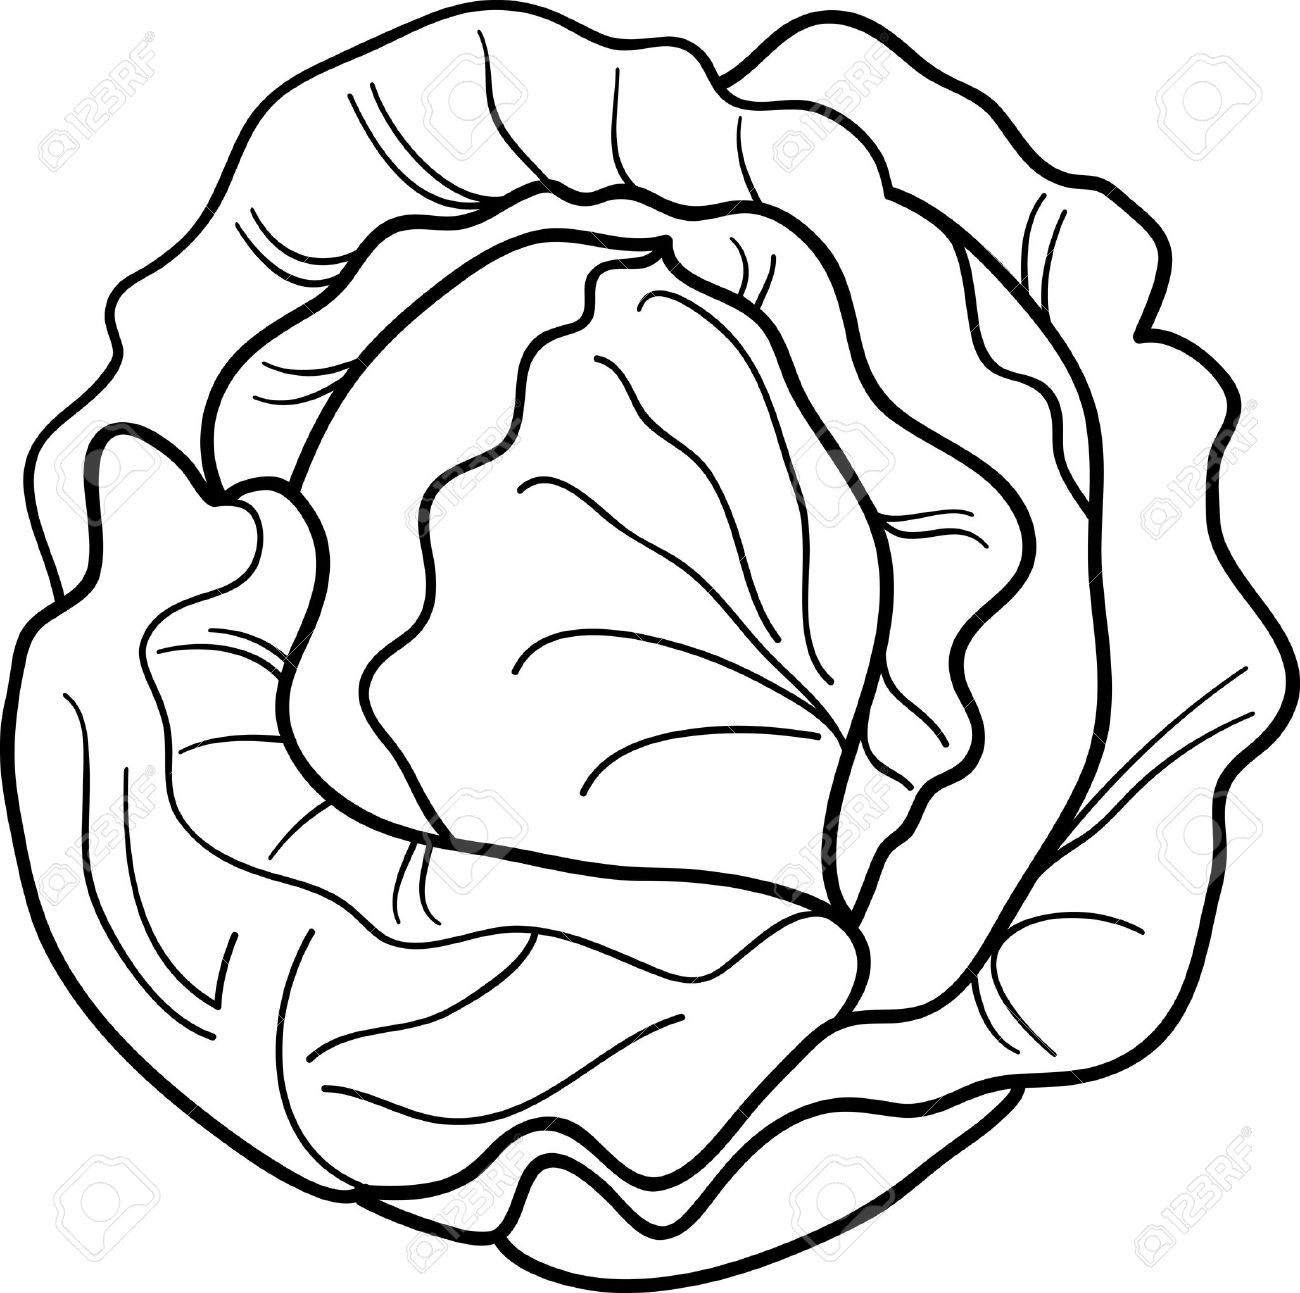 Image result for printable lettuce